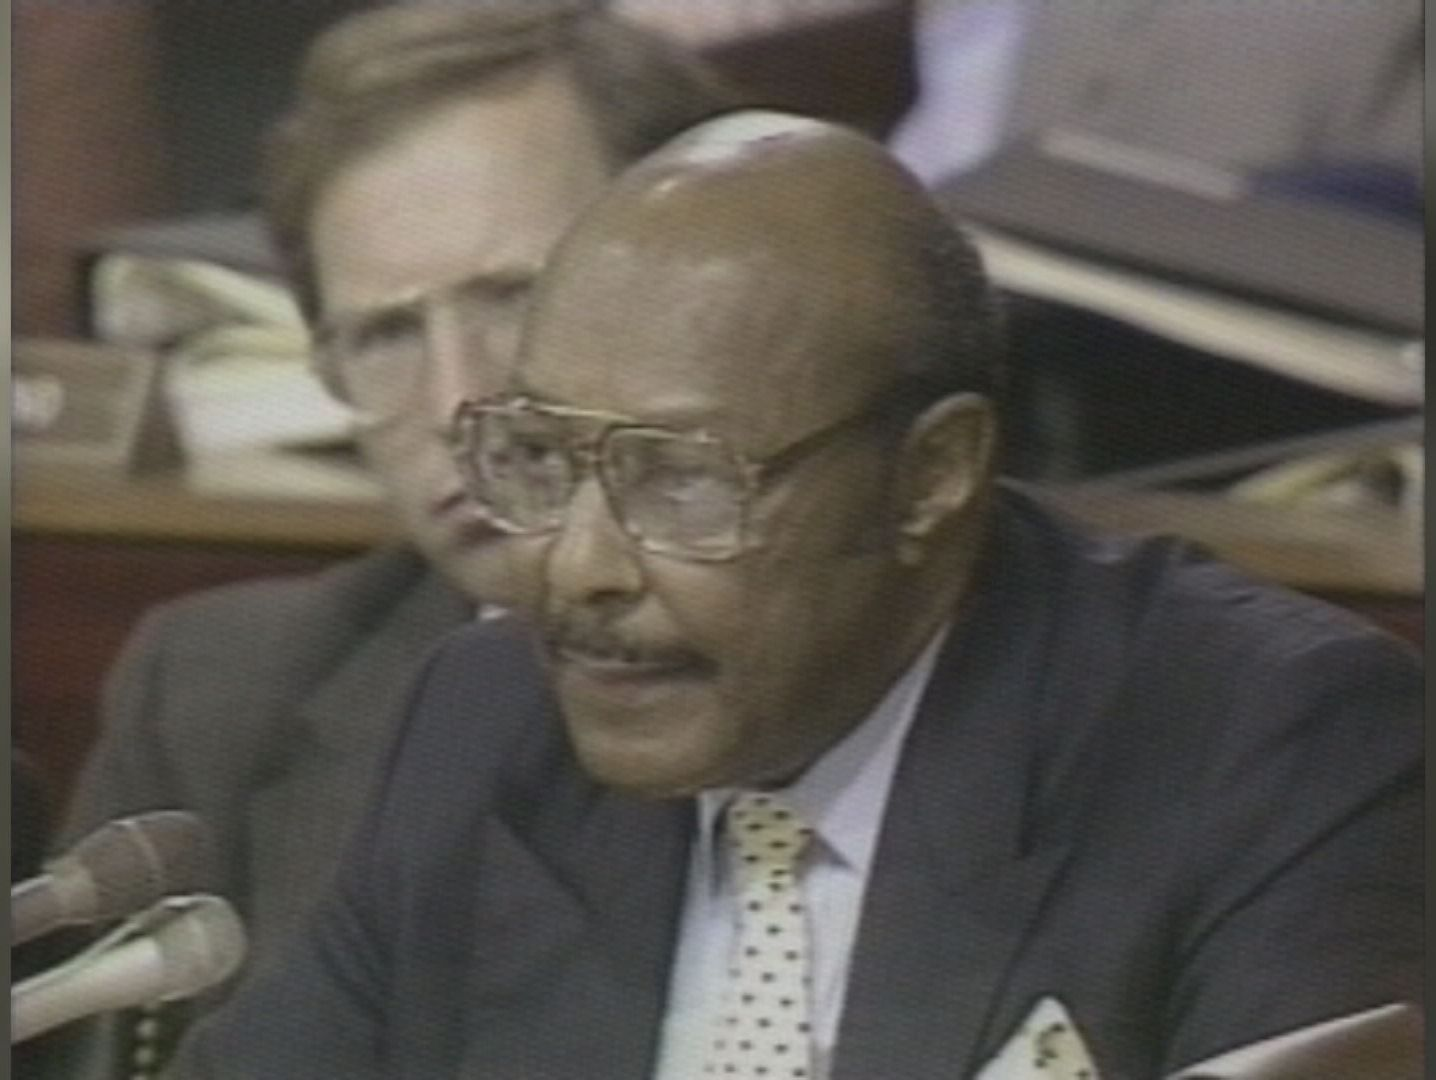 Louis Stokes, who was the first African-American member